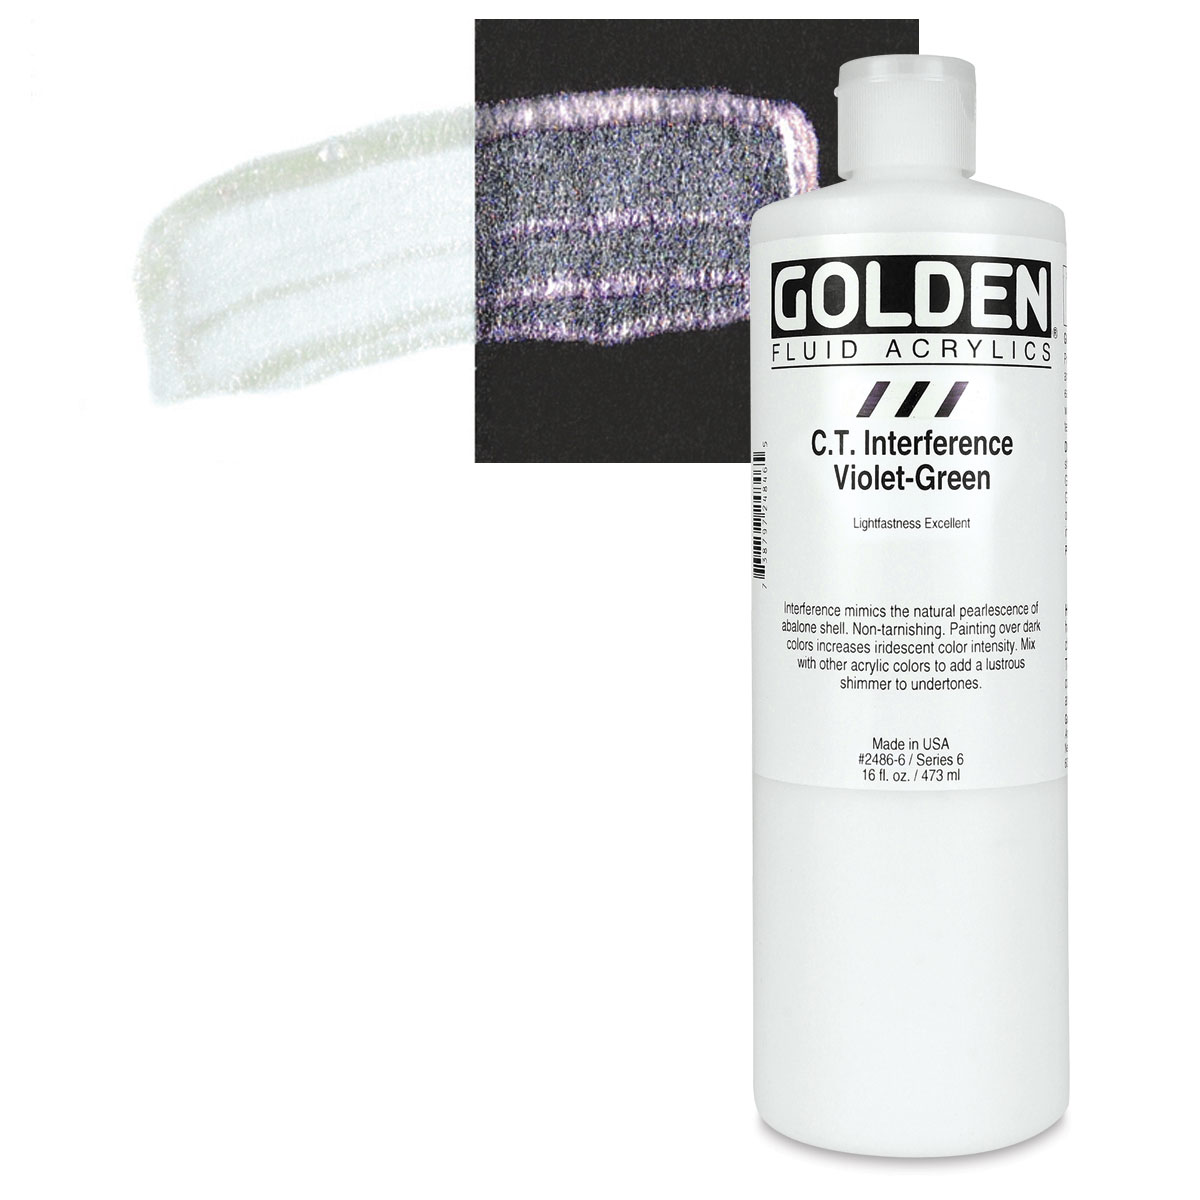 006386596 golden fluid acrylics blick art materials